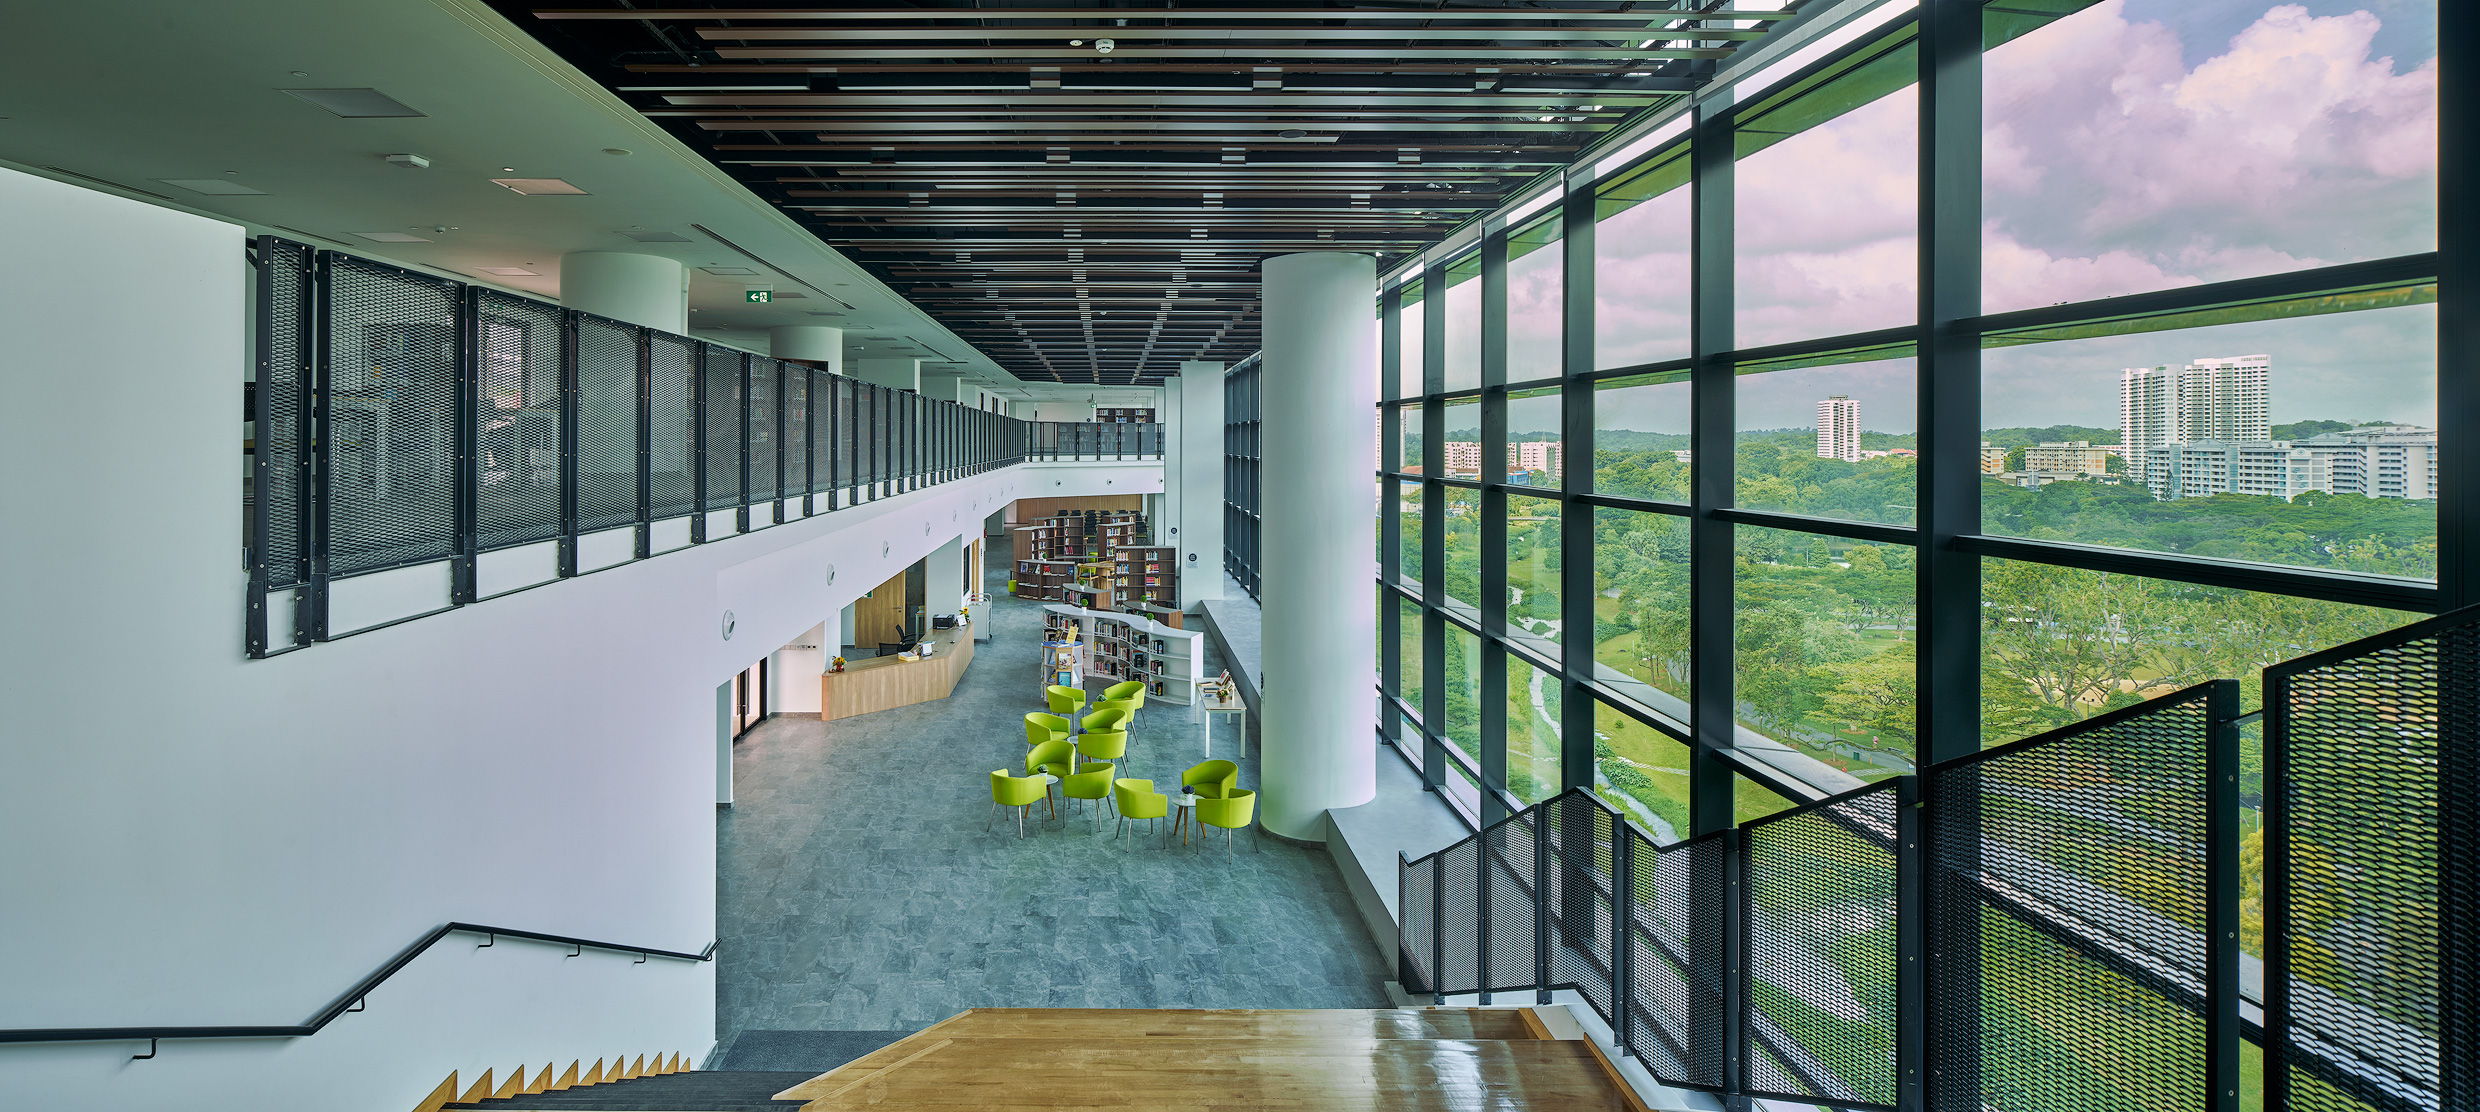 The tranquillity of EJC's library enhanced by external landscape